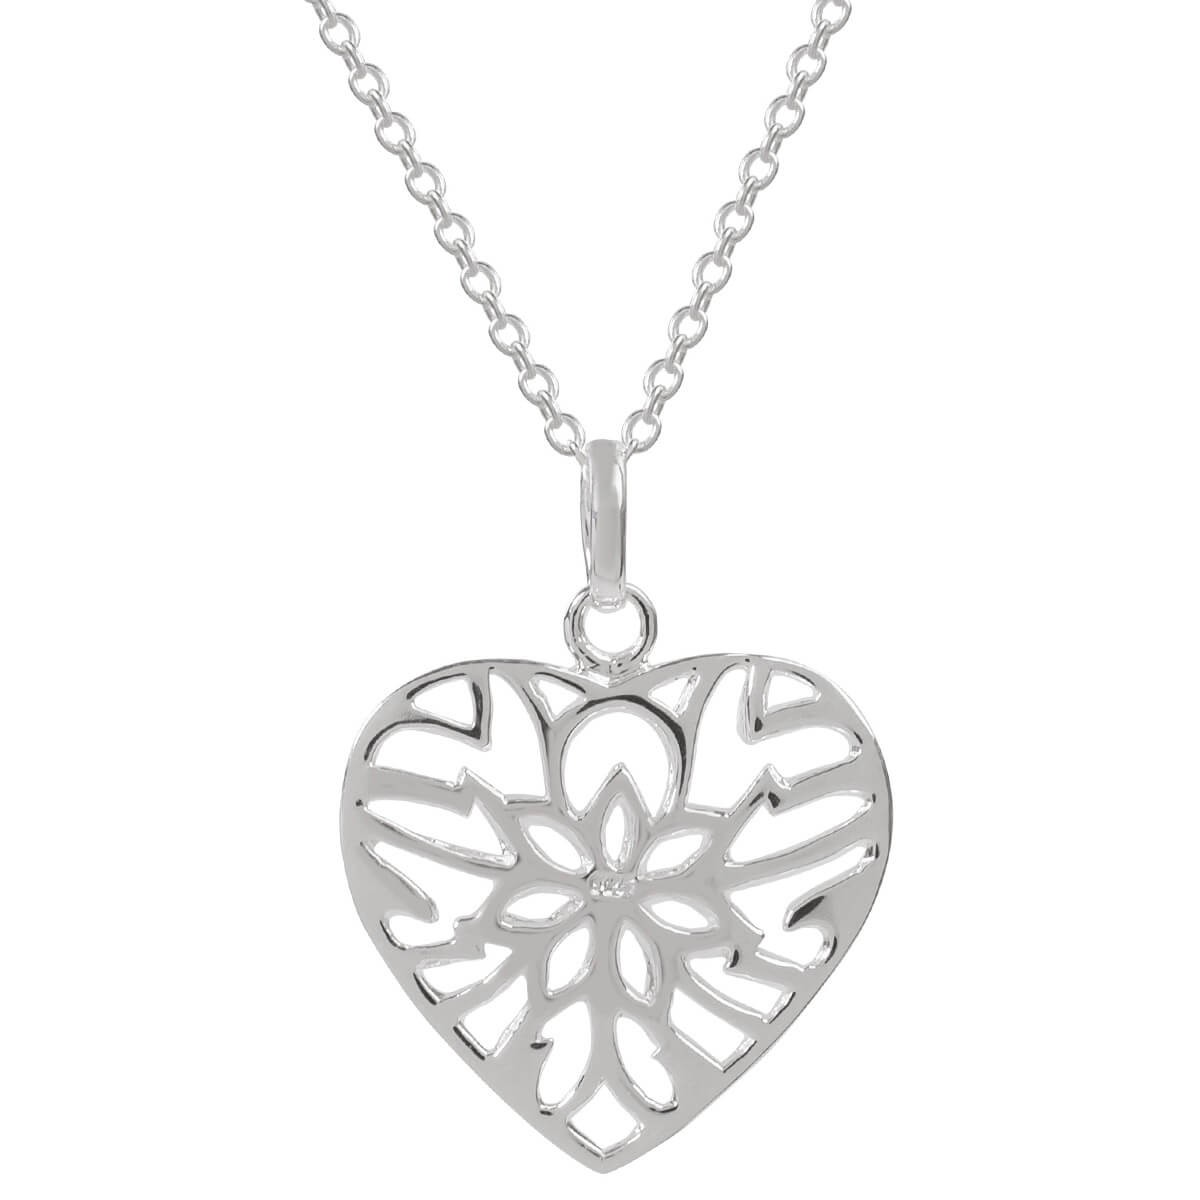 1200x1200 Sophie Oliver Barcelona Lattice Heart Necklace Sophie Oliver